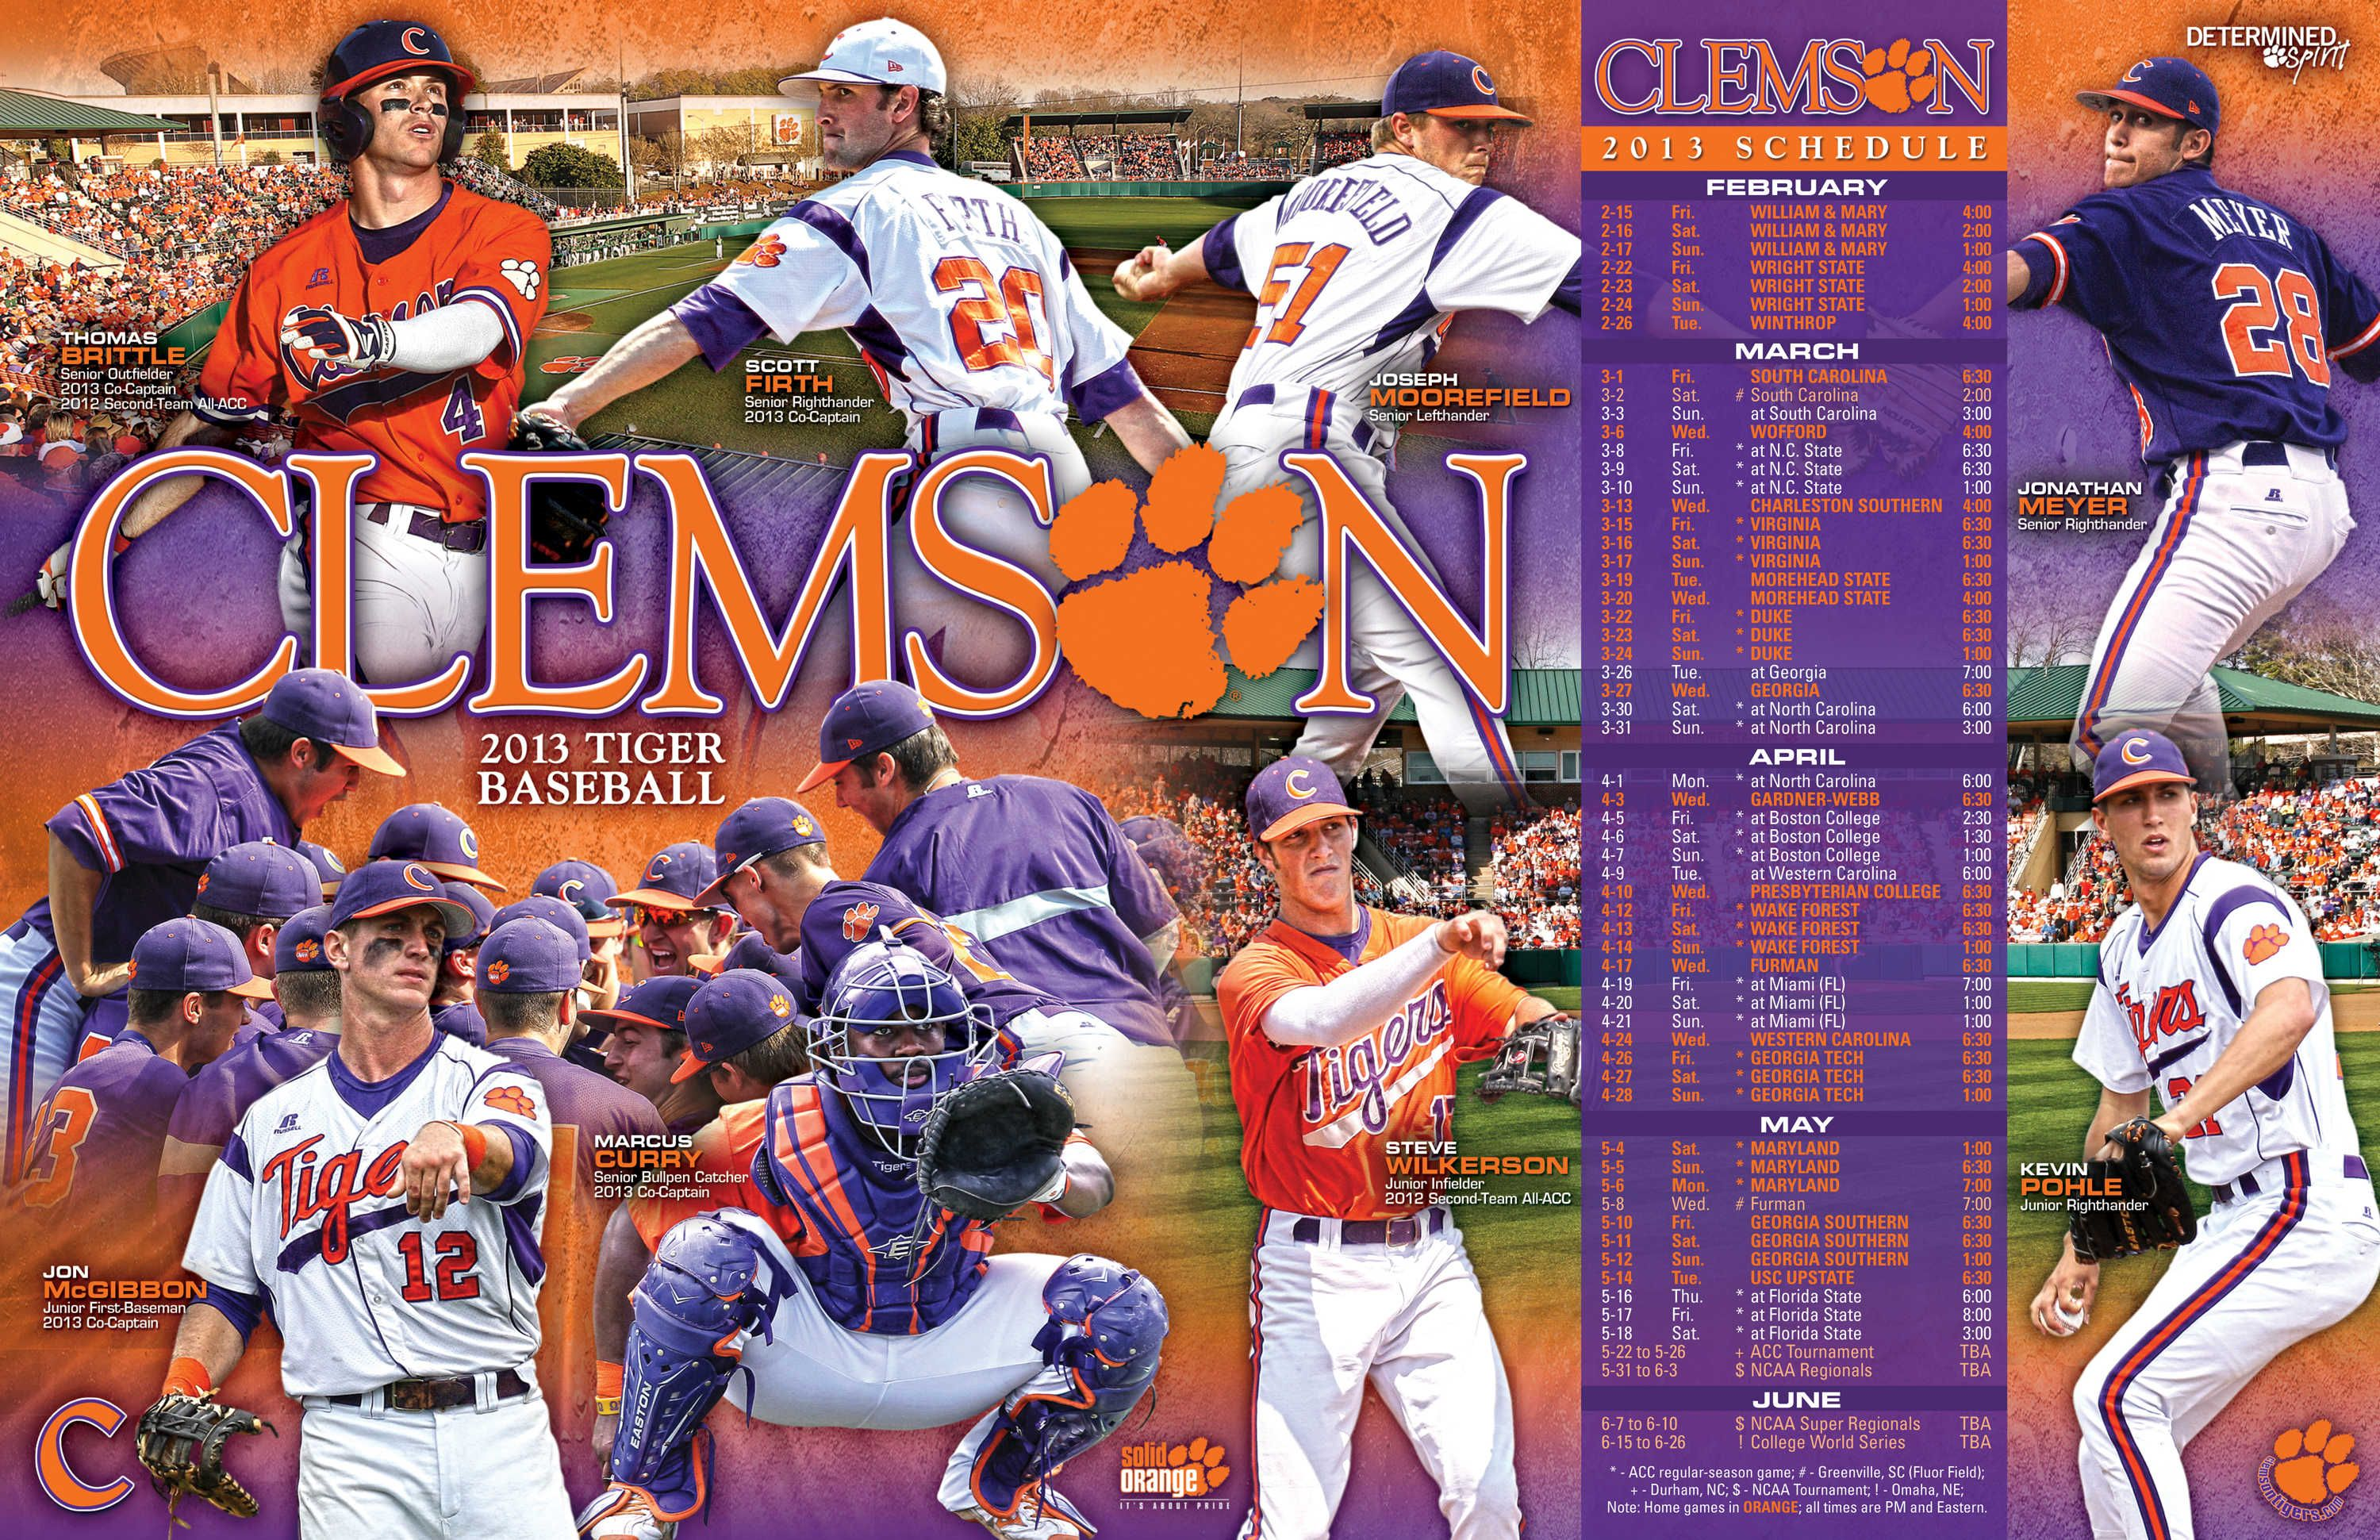 Look Out For Your Tigers On The Diamond Game Schedule For The 2013 Season Baseball Posters College Sports Fun Sports